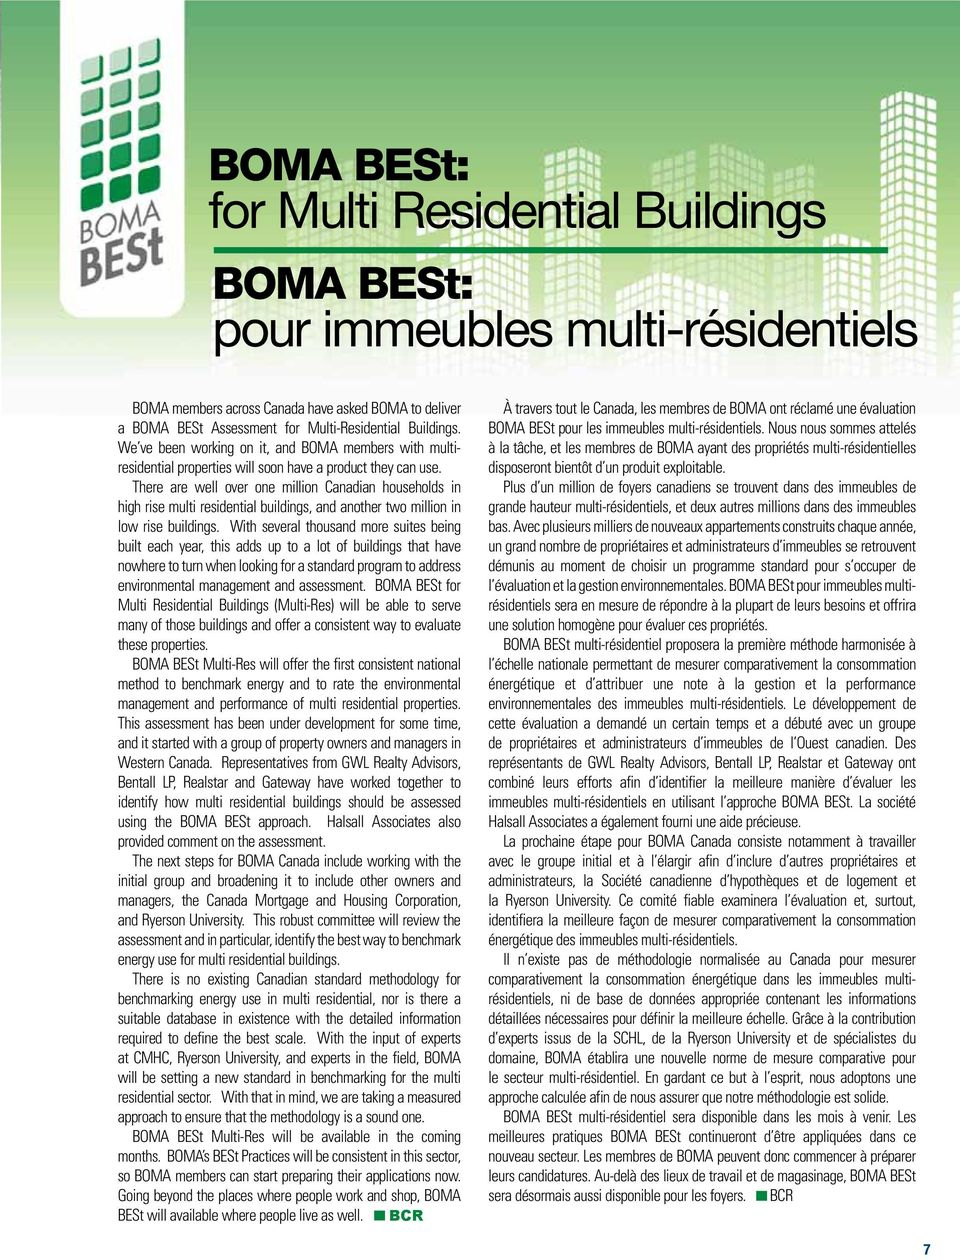 There are well over one million Canadian households in high rise multi residential buildings, and another two million in low rise buildings.